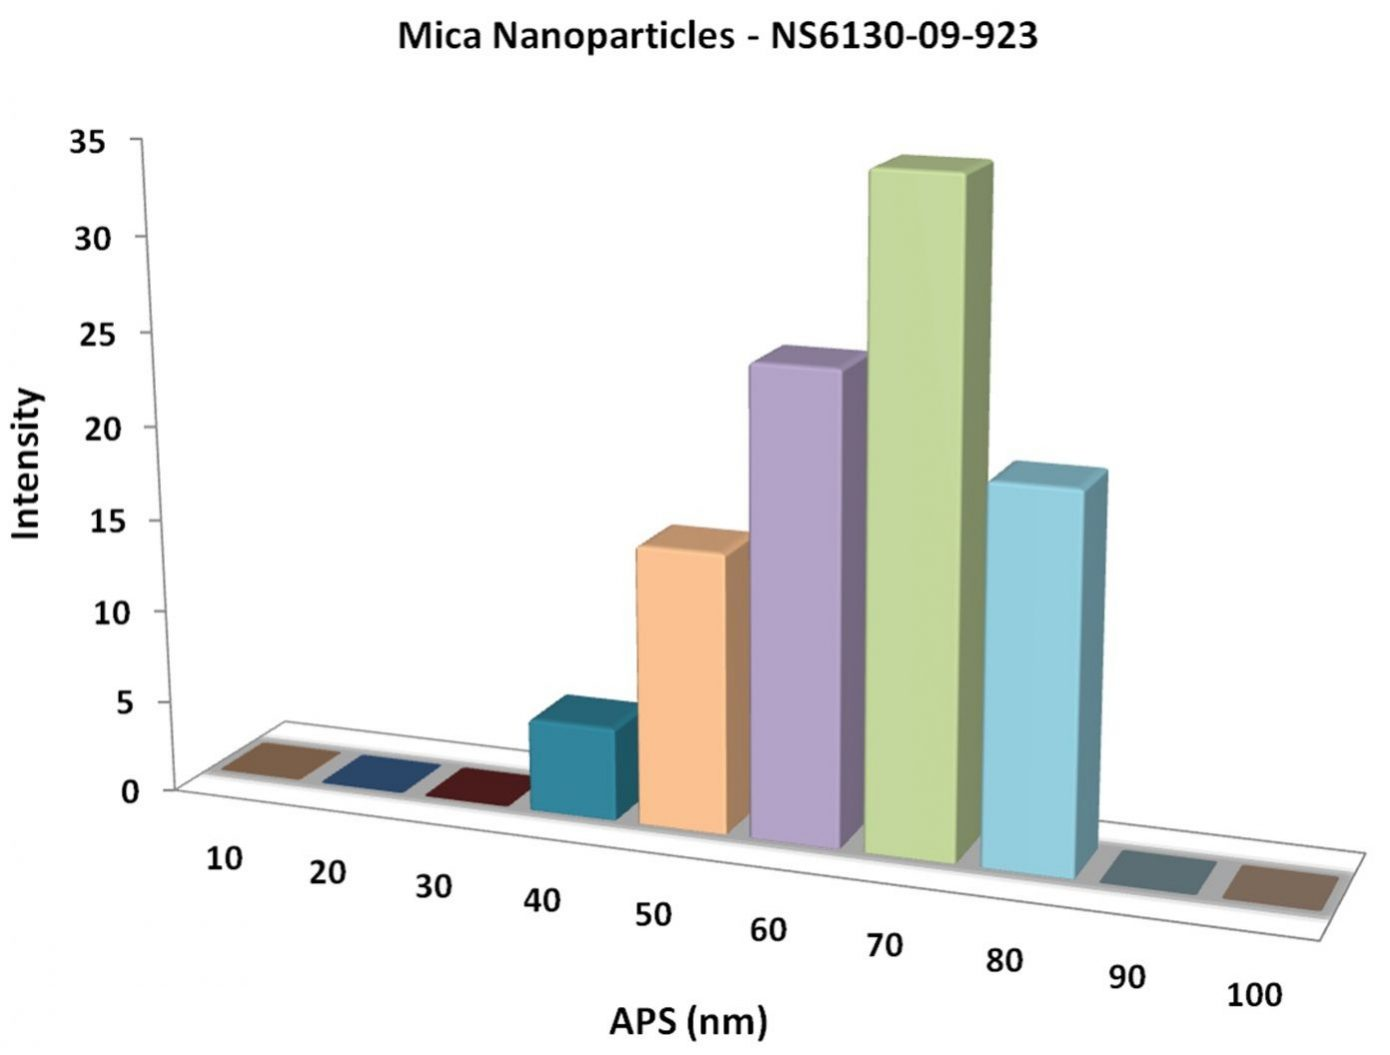 Particles Size Analysis - Mica Nanoparticles